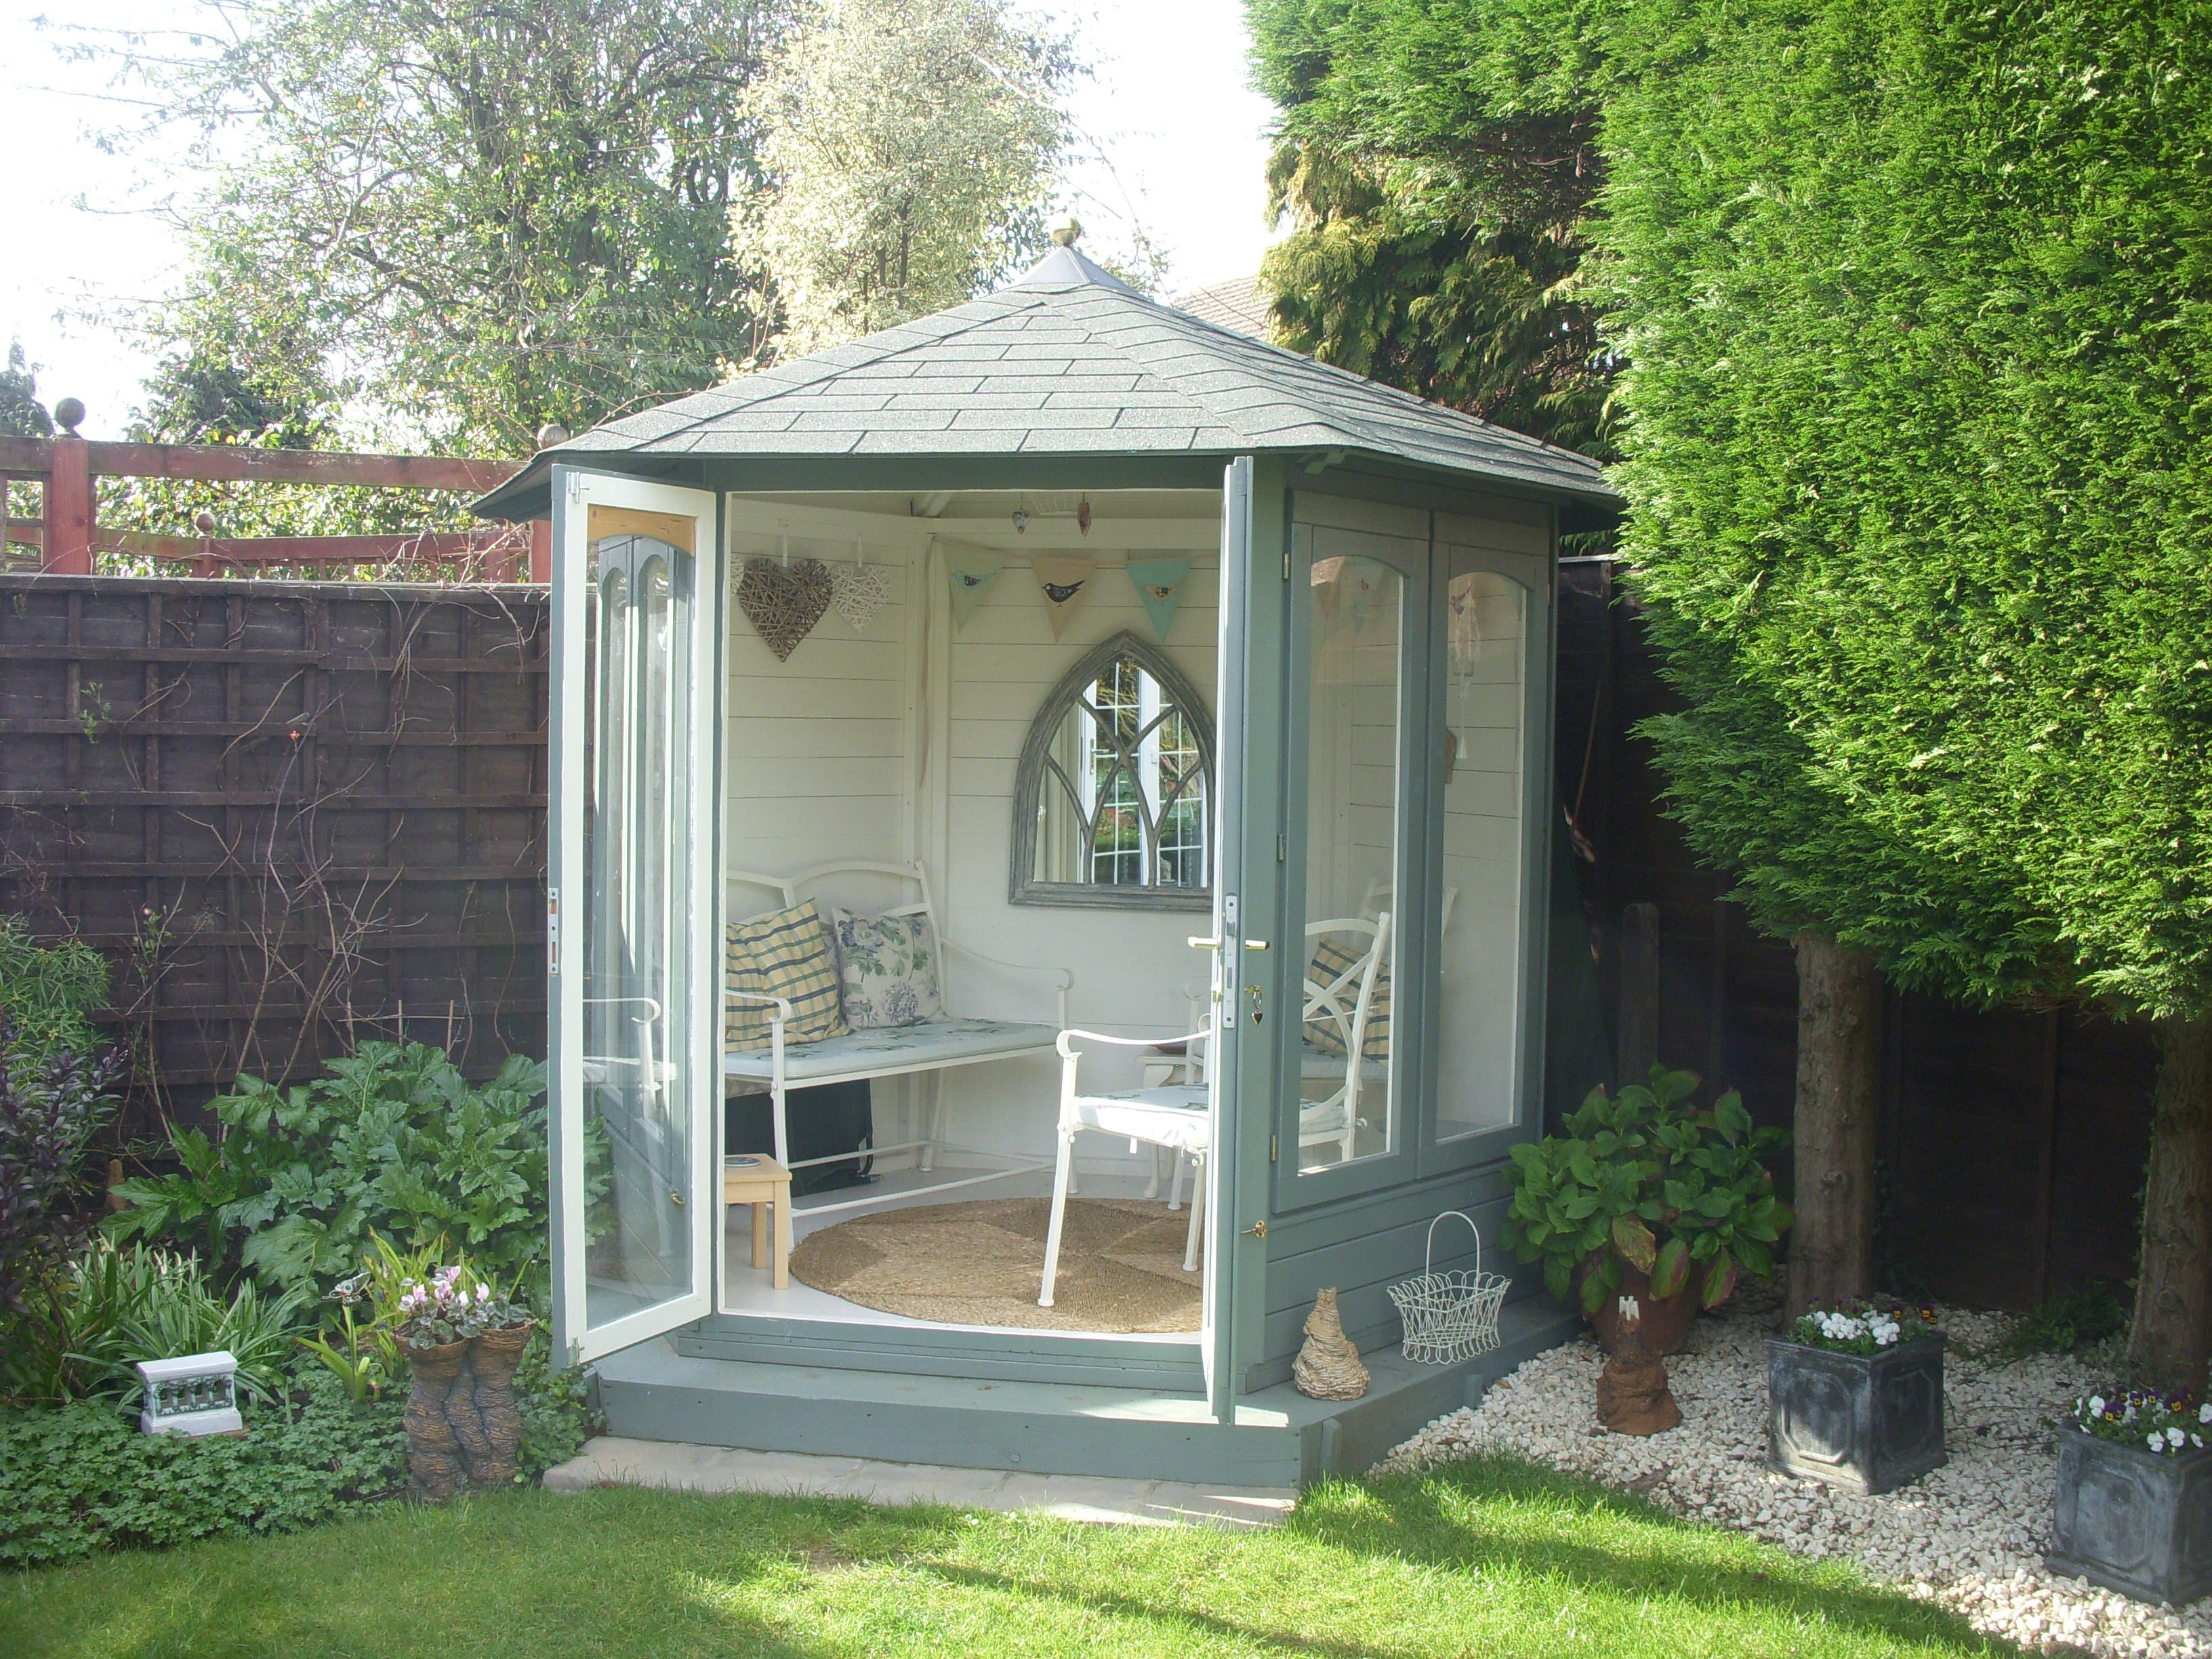 Jan Lets Us Know About Her Summerhouse My Beautiful Green Blue Hexagonal Summerhouse Is My H Summer House Garden Small Summer House Summer House Interiors